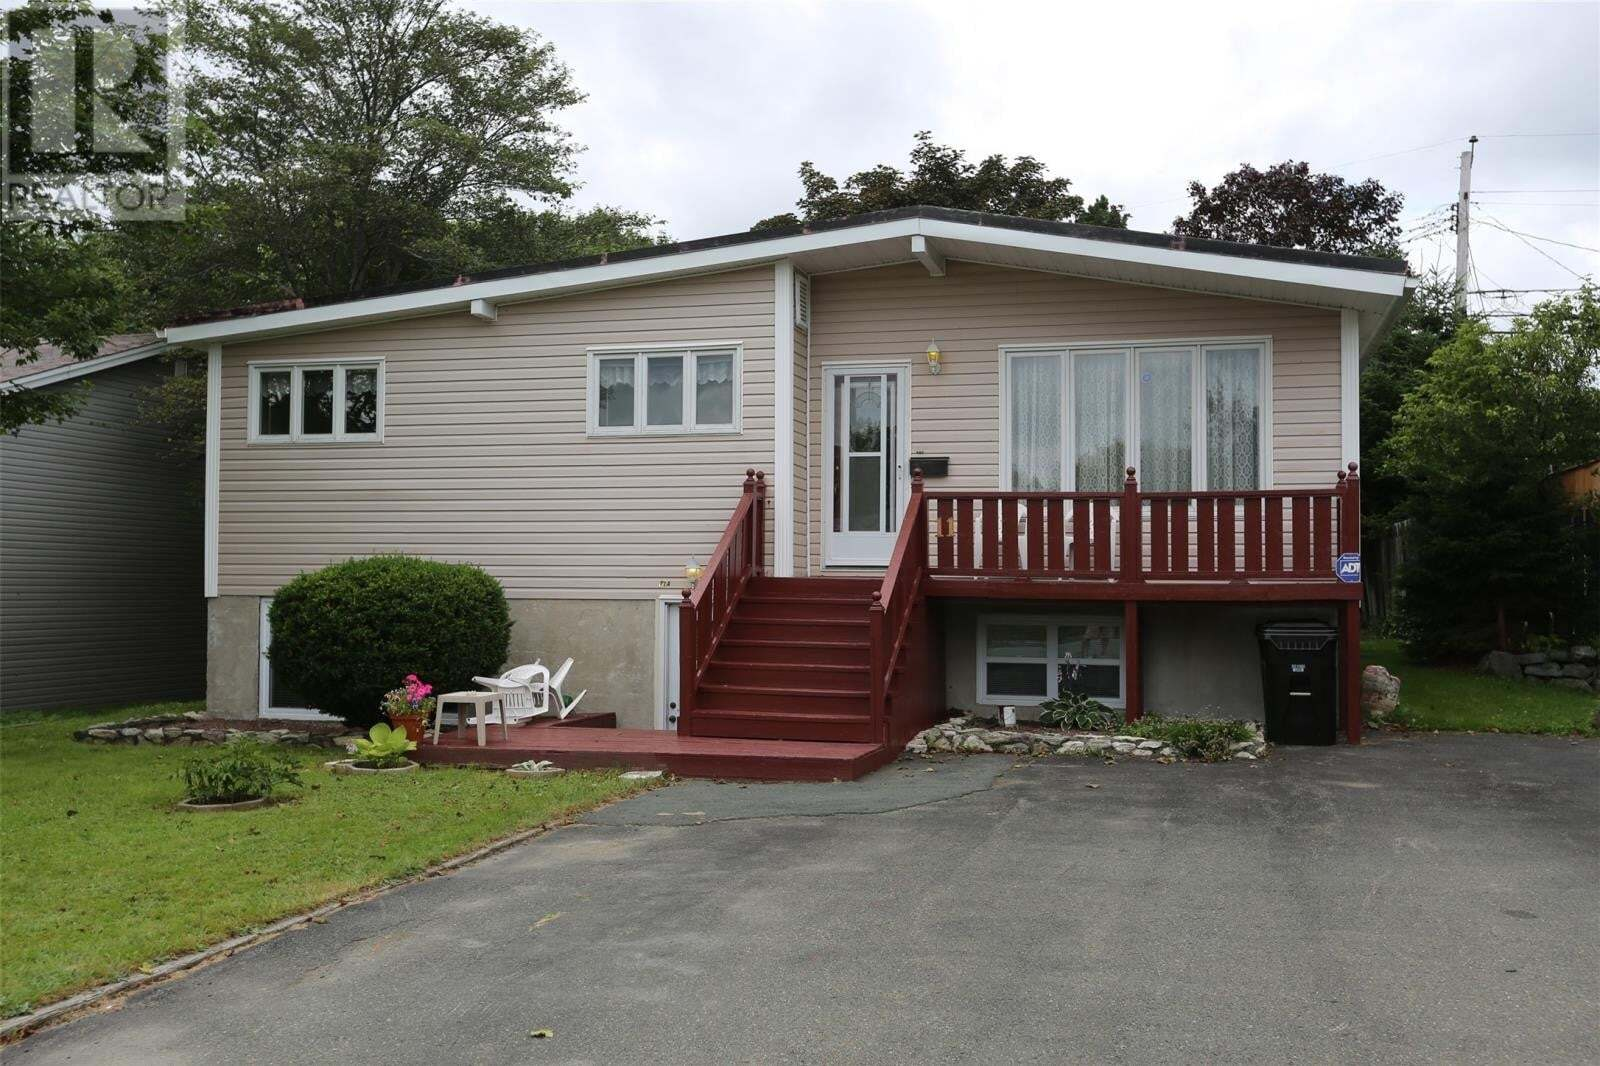 House for sale at 11 Ross Rd St. John's Newfoundland - MLS: 1221888